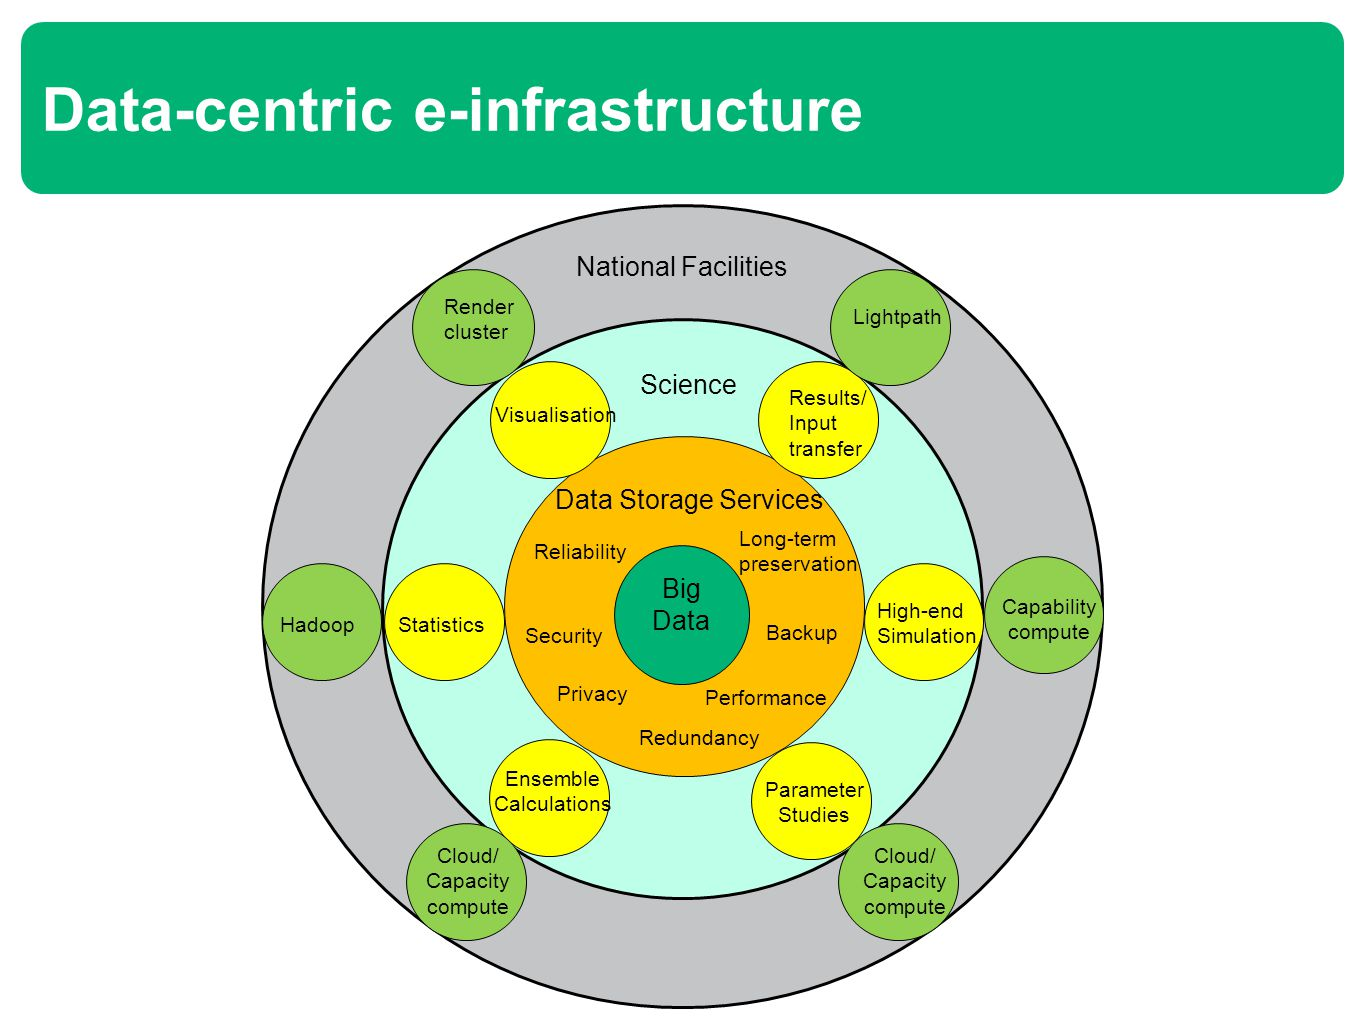 Data-centric e-infrastructure